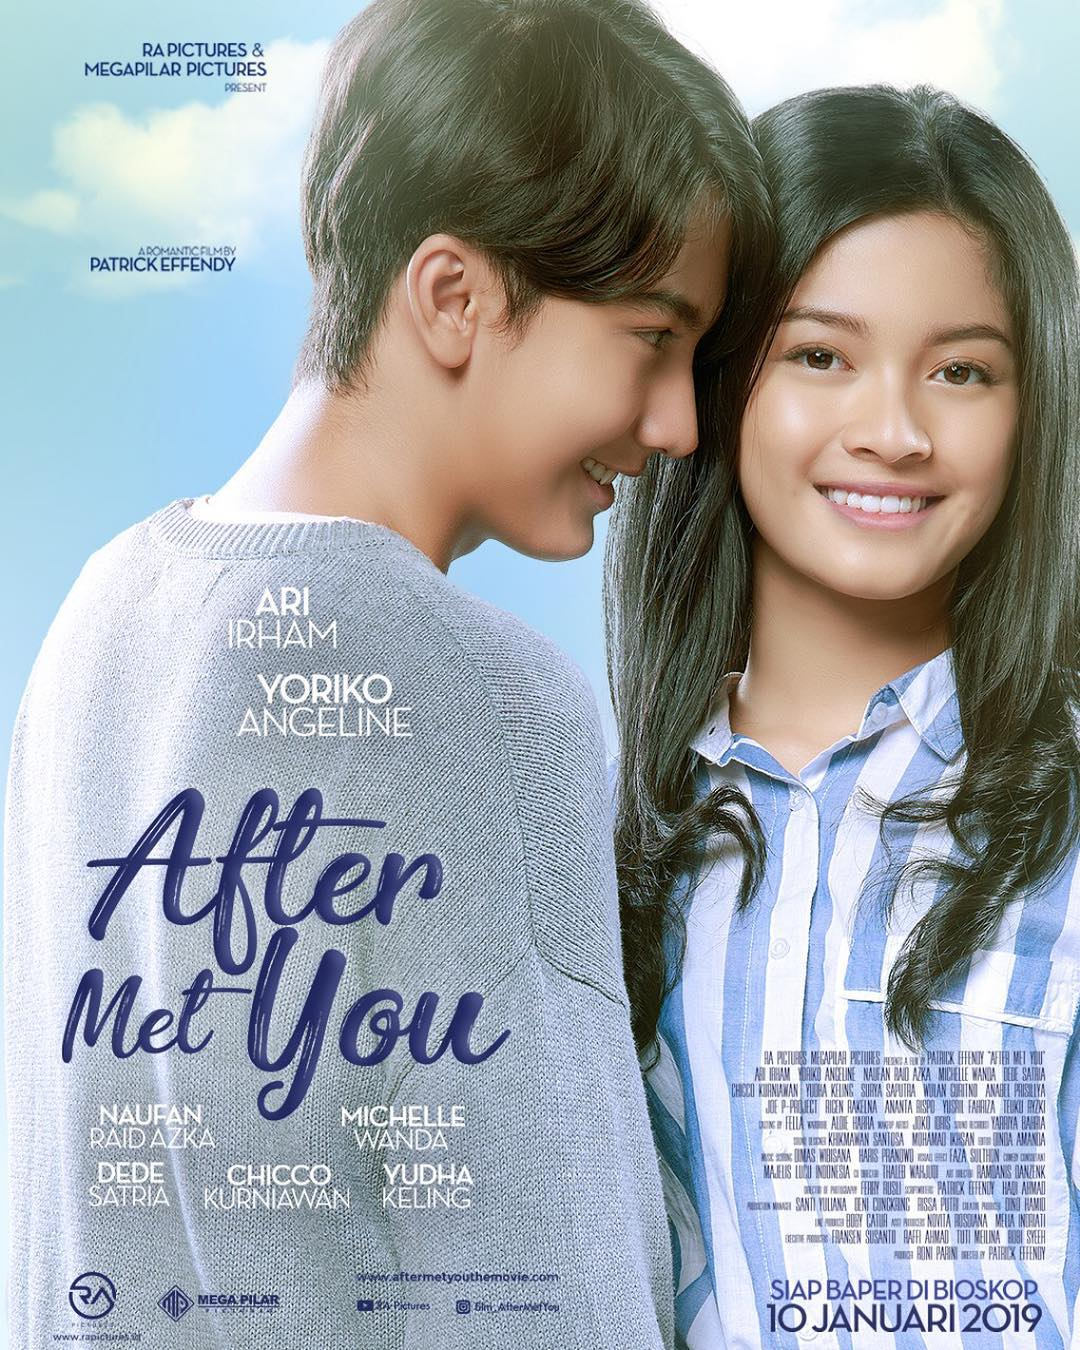 a romantic movie 2019 After Met You 2019 IMDb